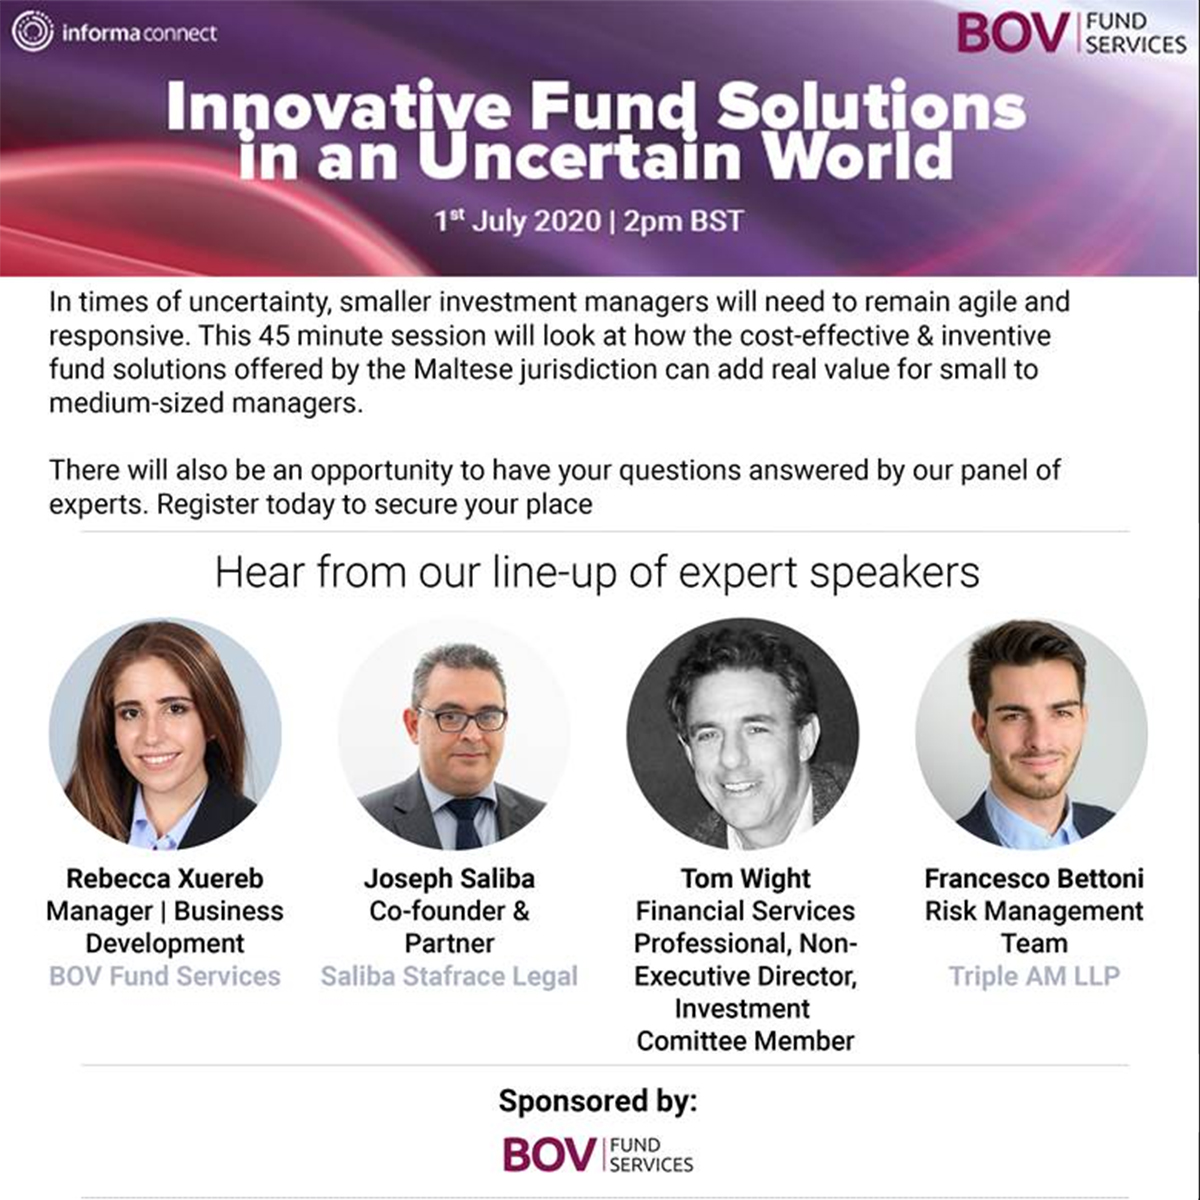 Innovative Fund Solutions in an Uncertain World